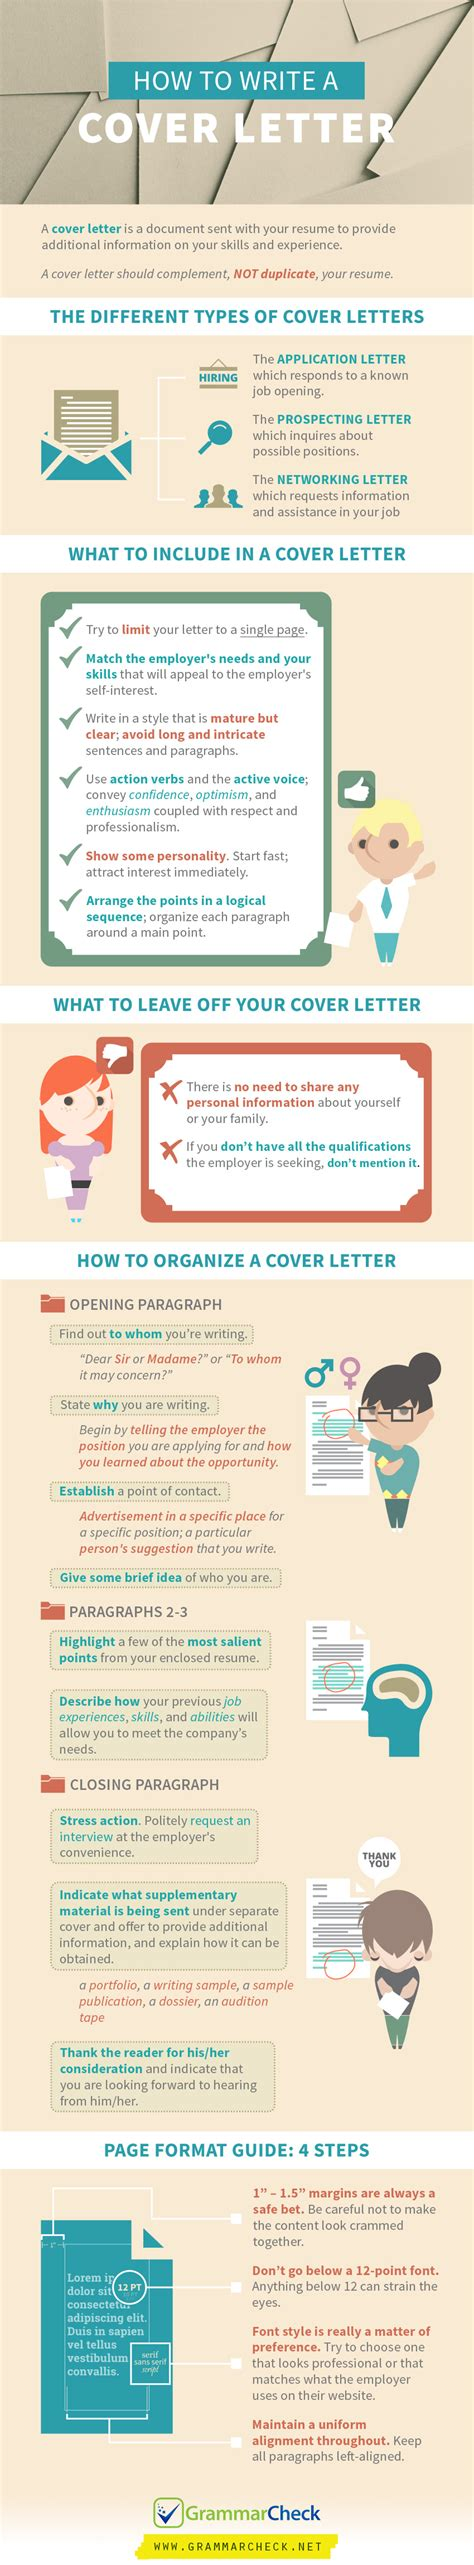 How To Write An Excellent Cover Letter For A by Free Education For All